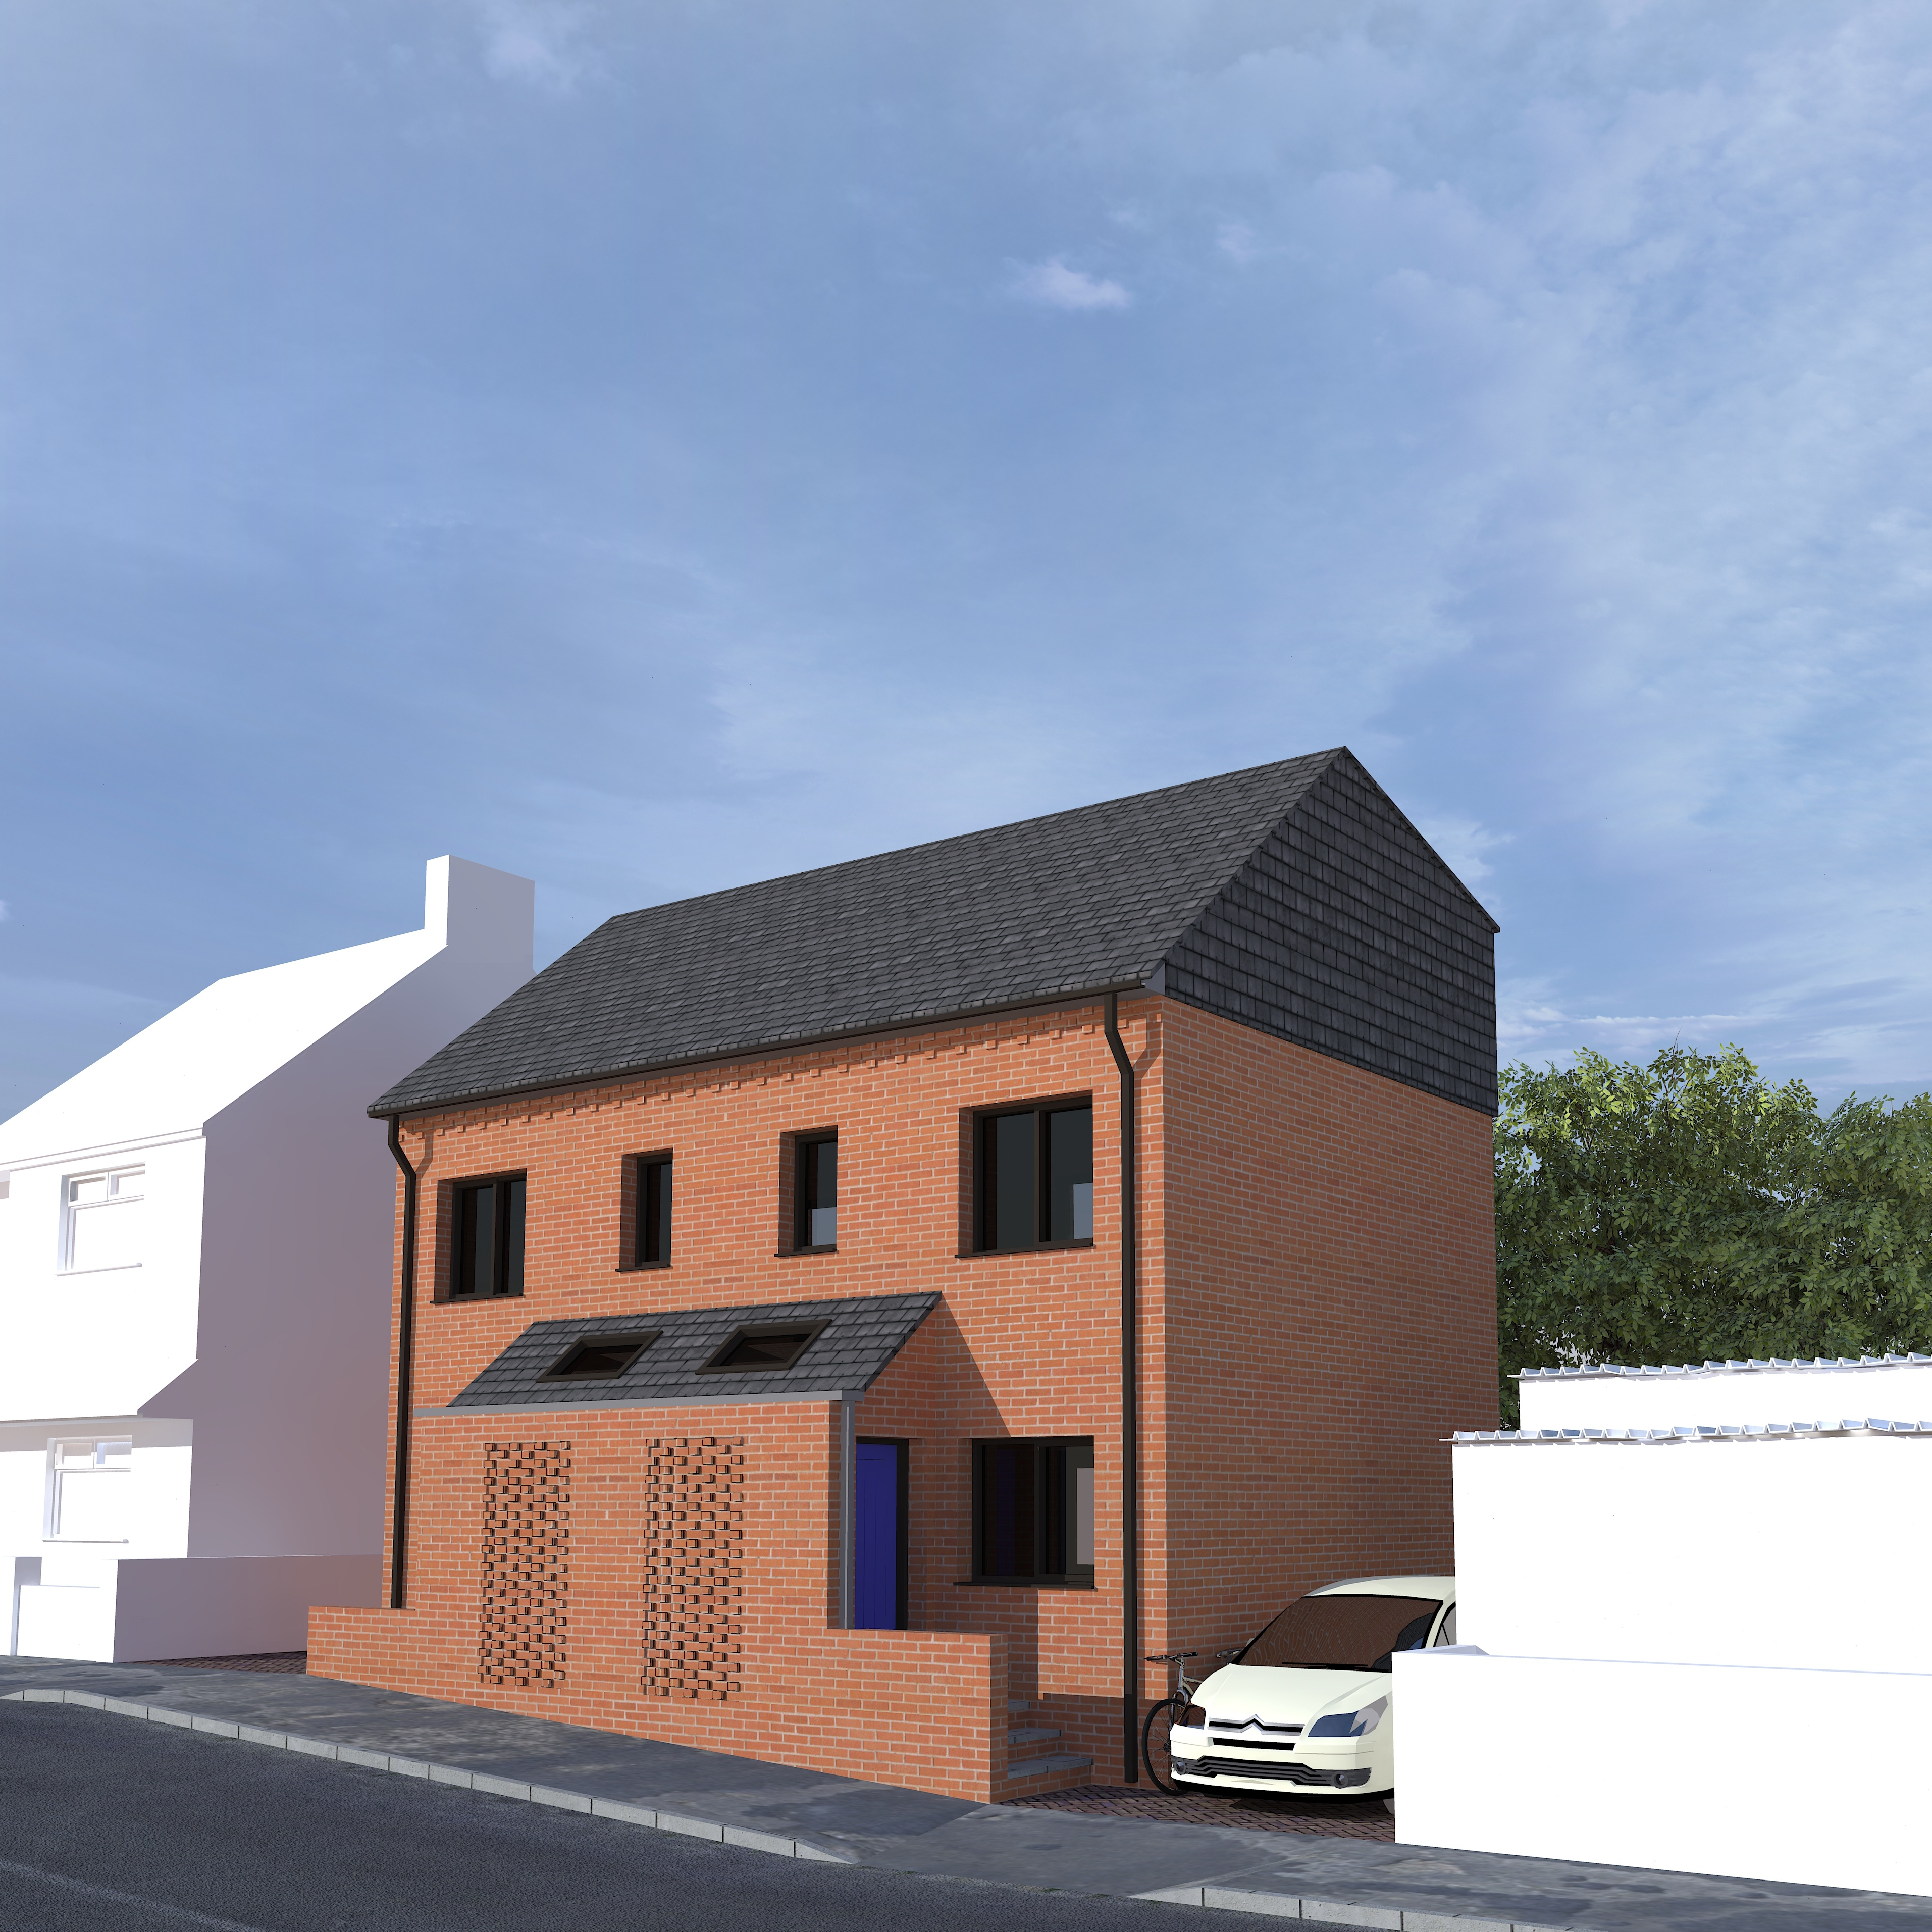 New affordable Housing Croft Architecture